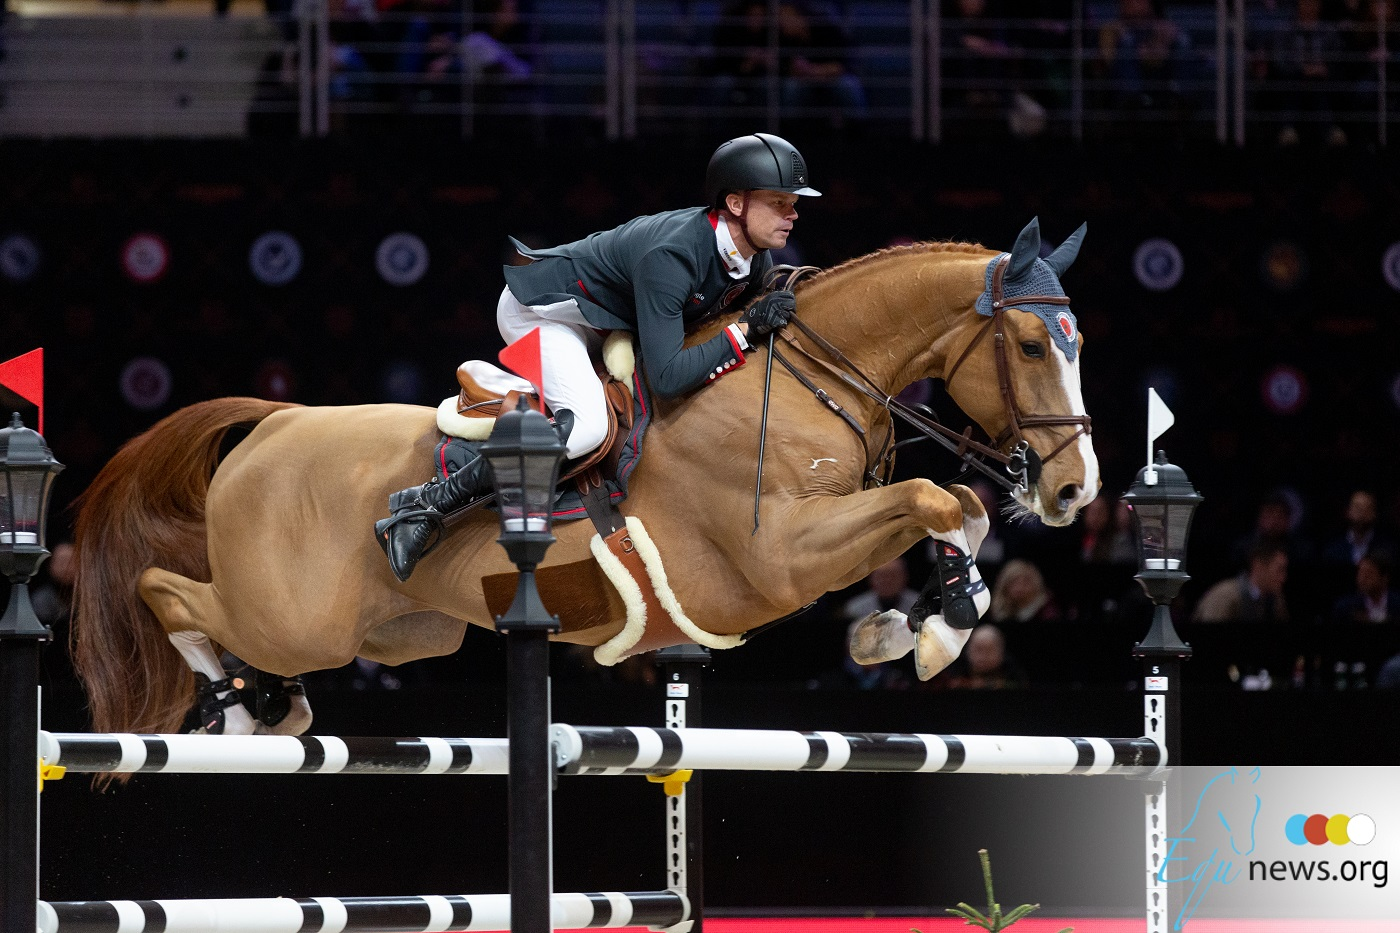 Jérôme Guery takes the lead in CSI2* Grand Prix of Sentower Park